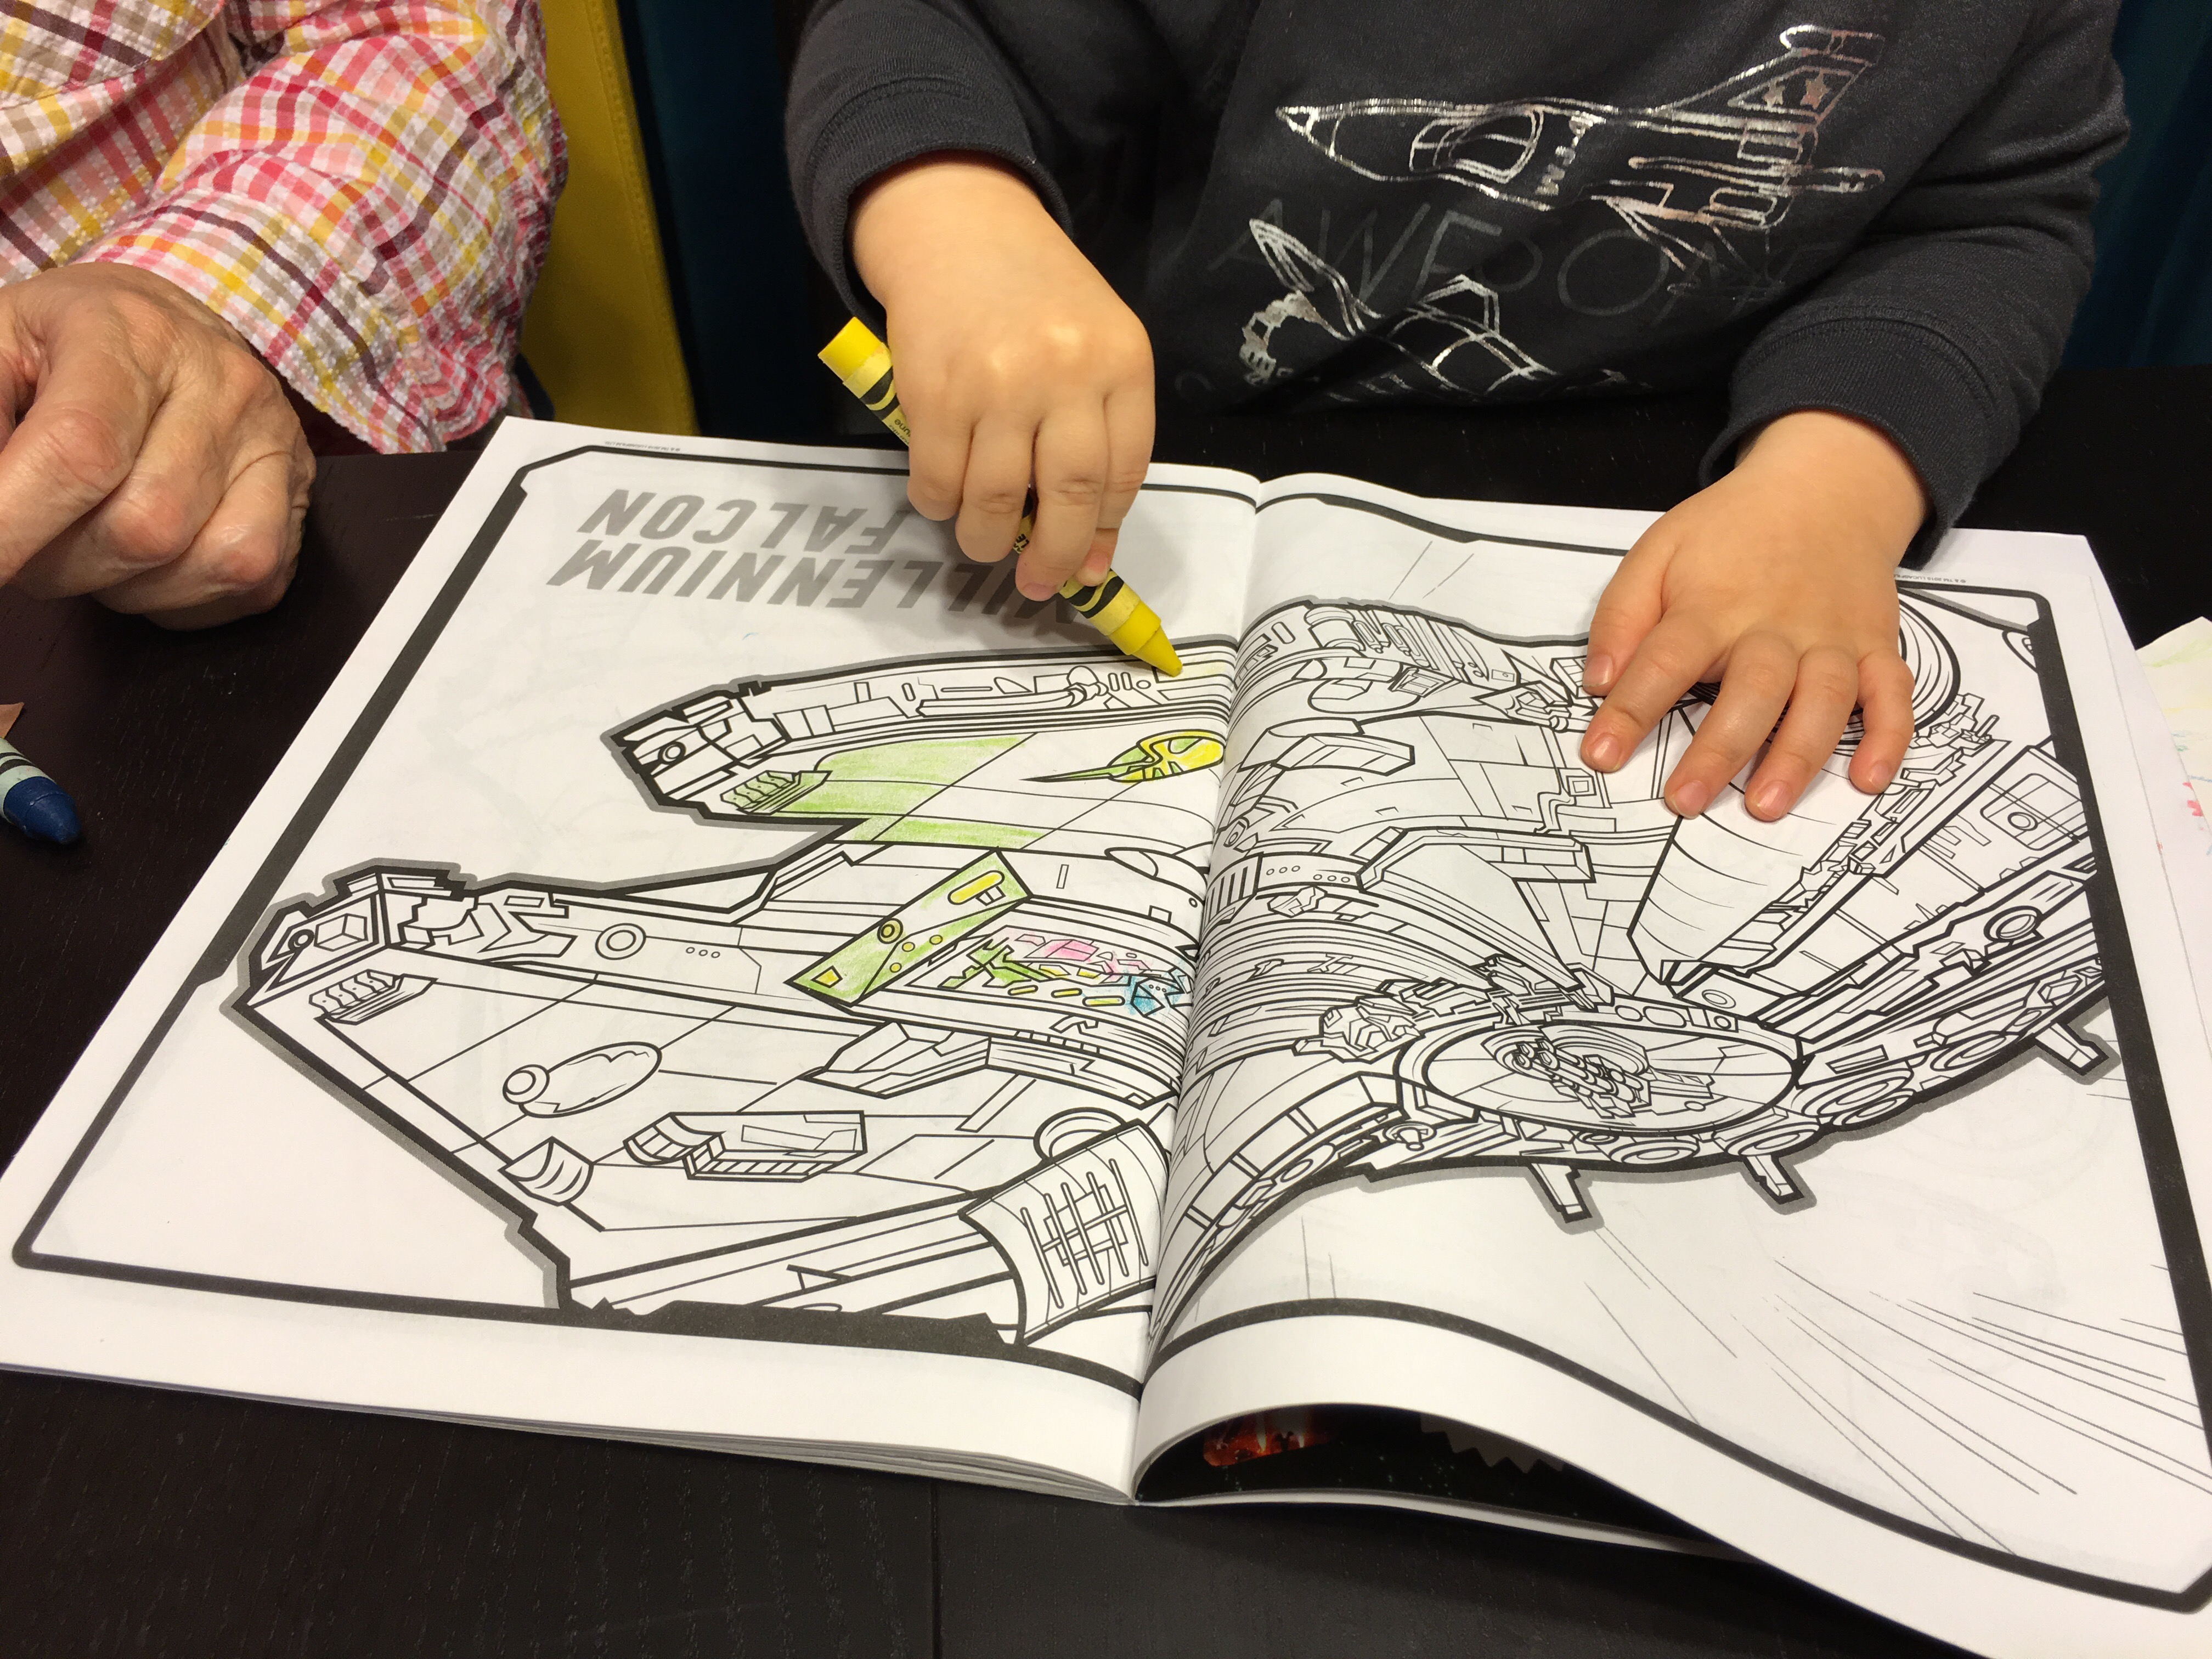 Toddler hands hold a big yellow crayon, carefully coloring a picture of the Millennium Falcon in a The Force Awakens coloring book